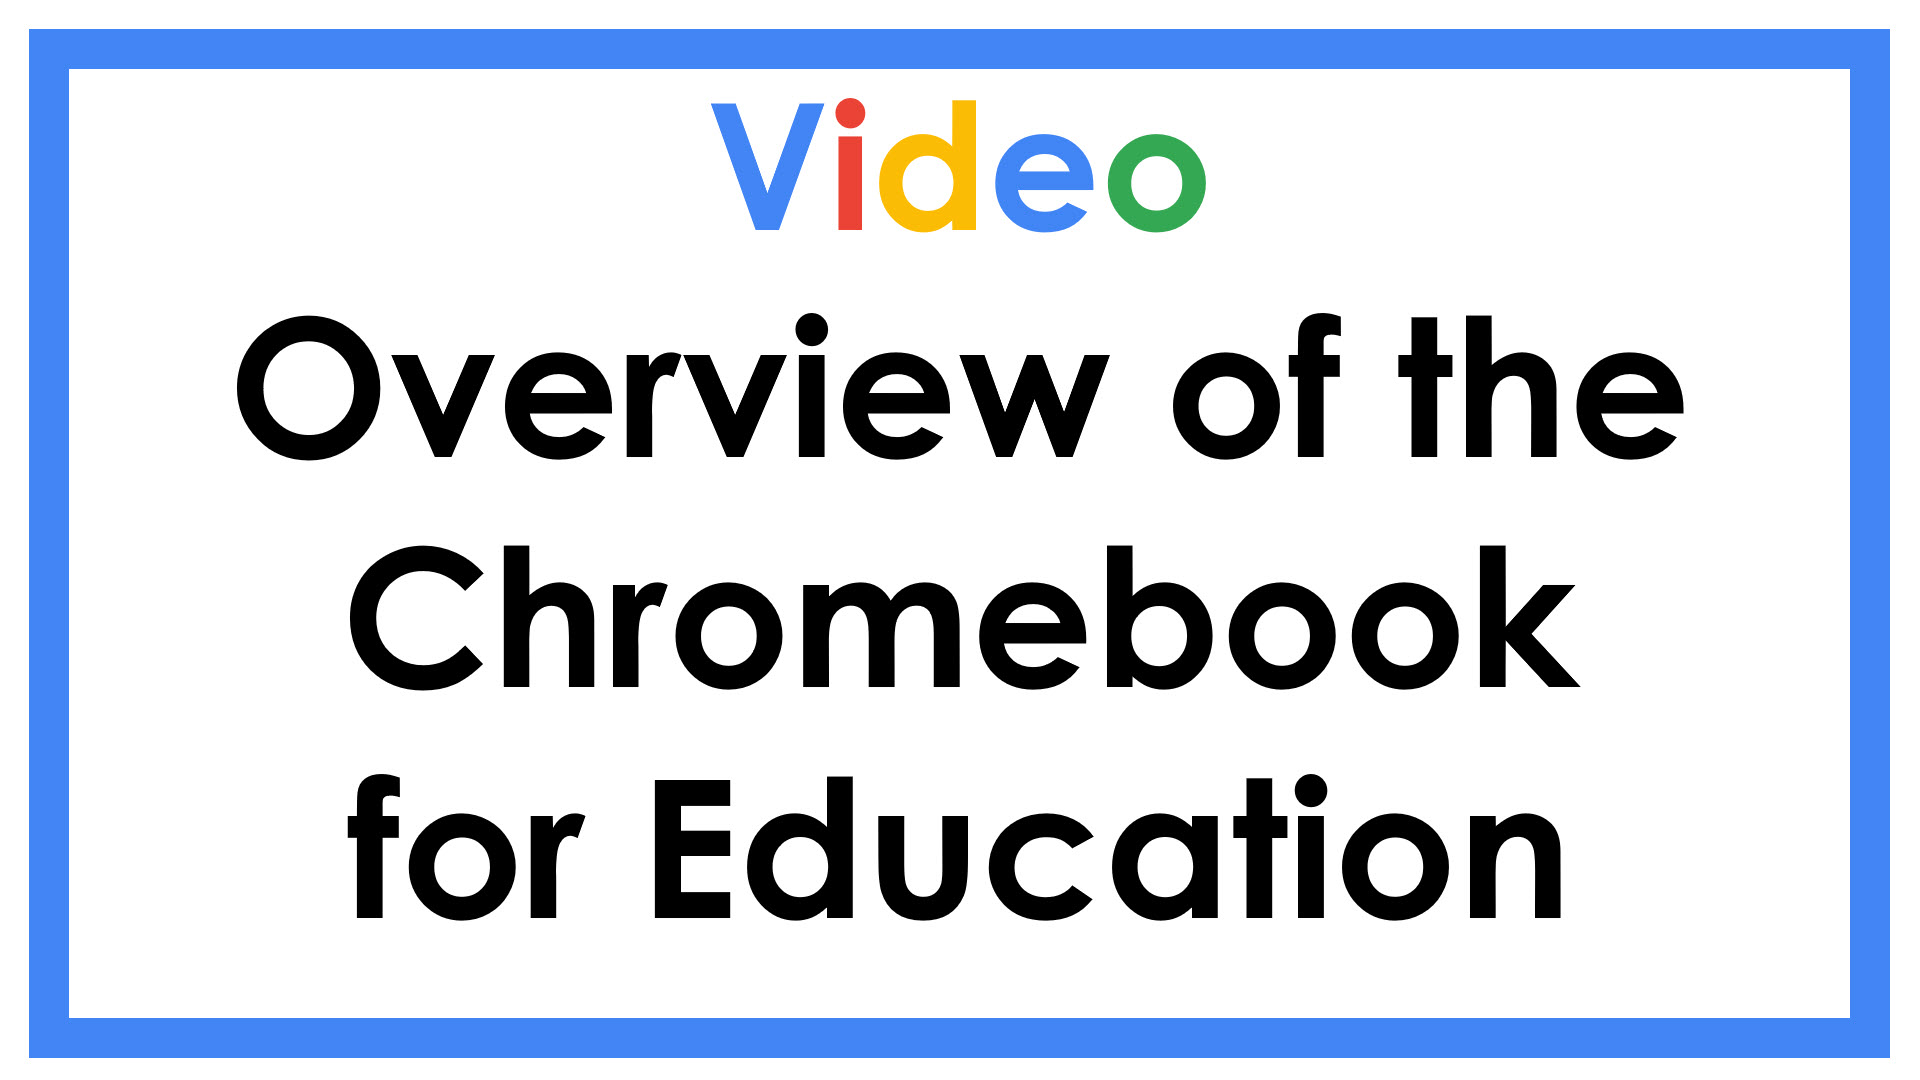 Video Overview of the Chromebook for Education